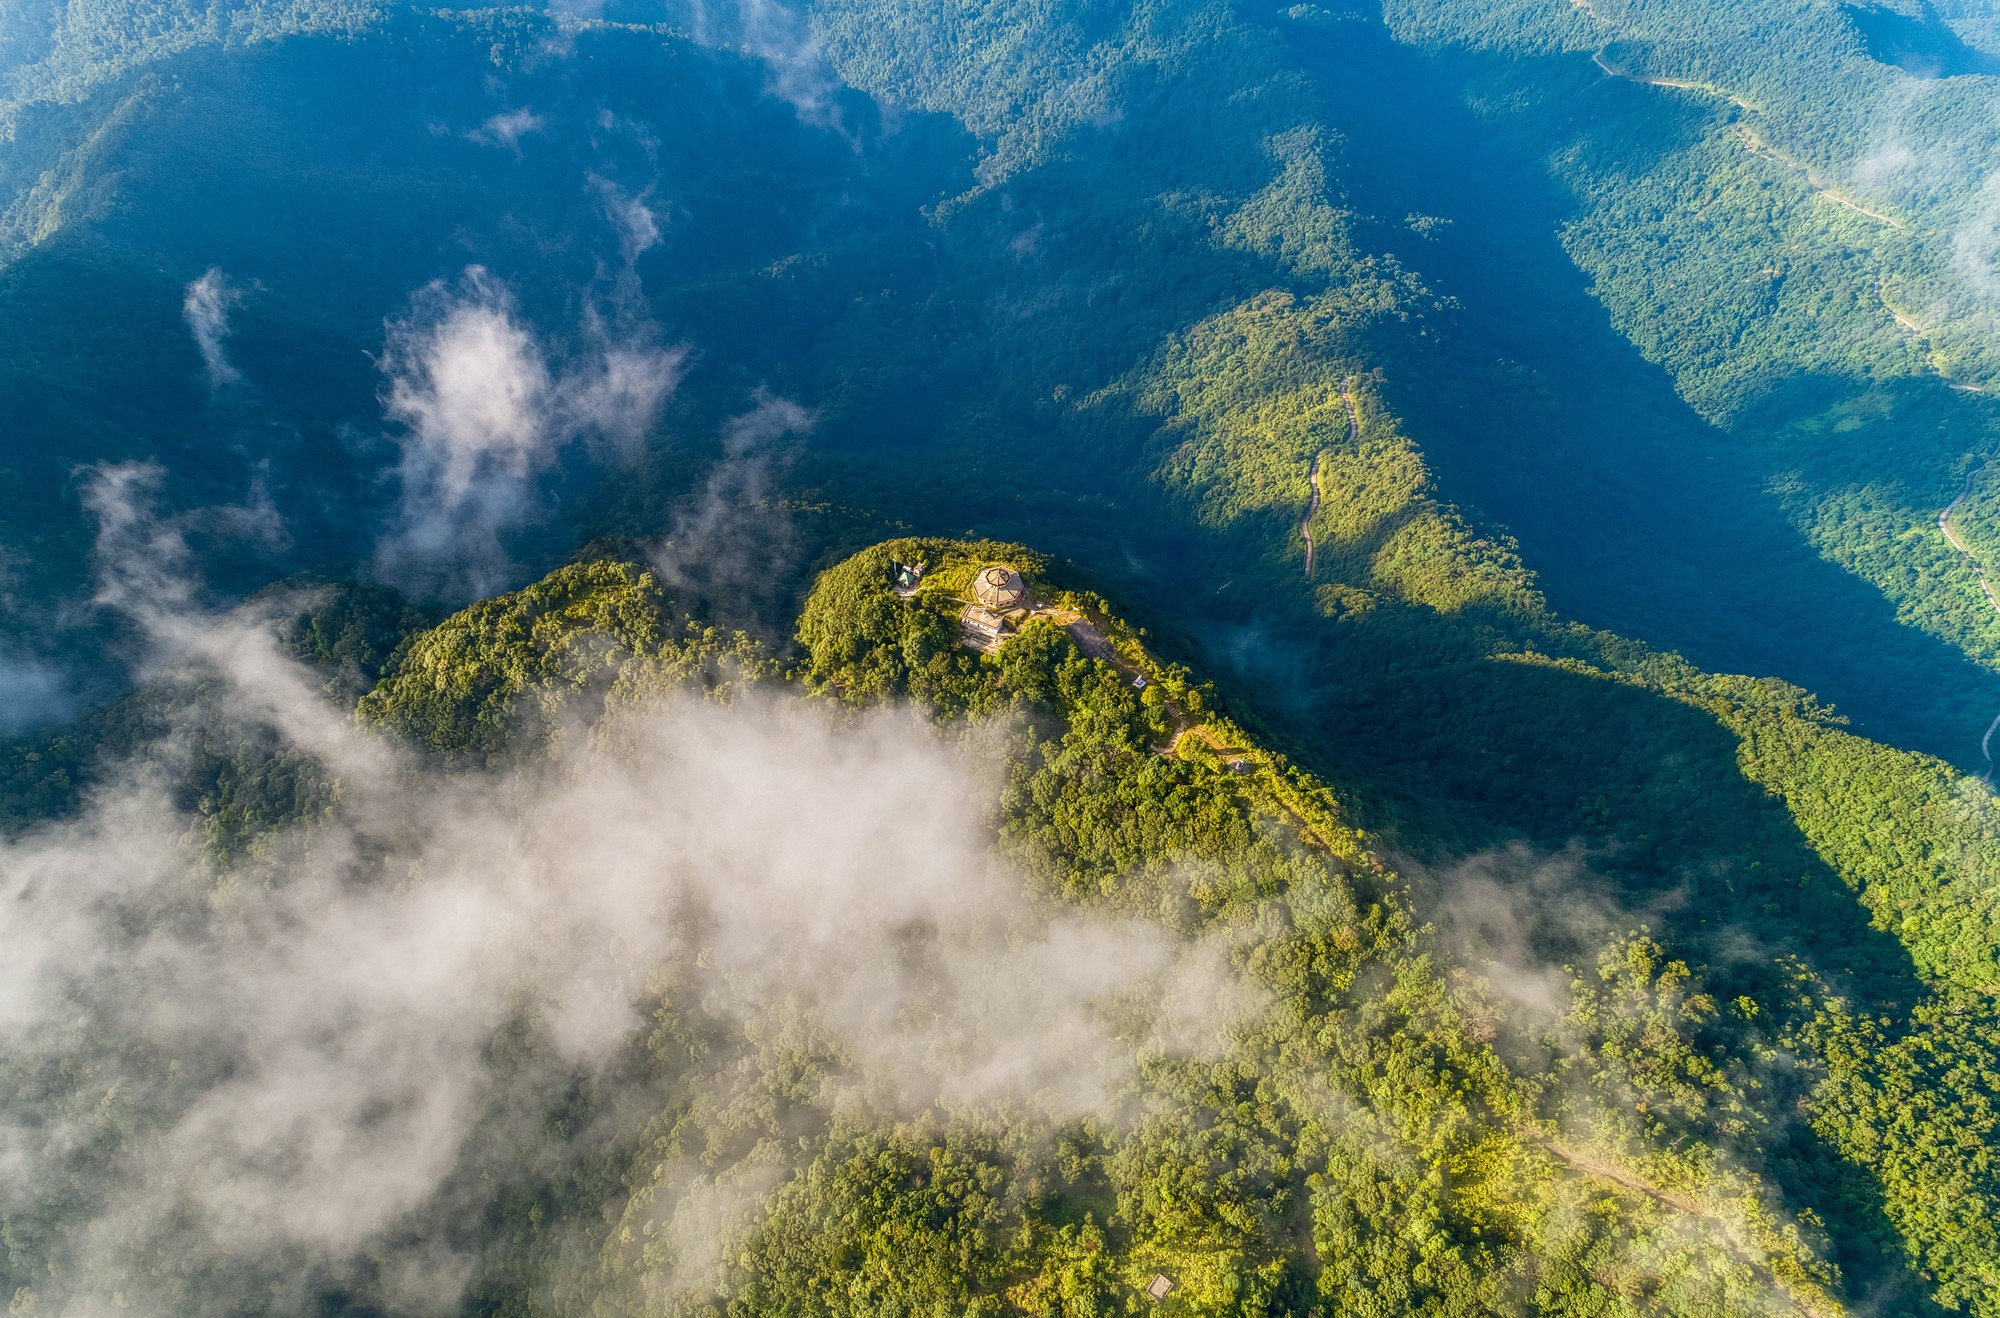 A bird's-eye view of Hai Vong Dai, situated on the top of the highest mountain in Bach Ma Range in central Vietnam. Photo: Nguyen Phong